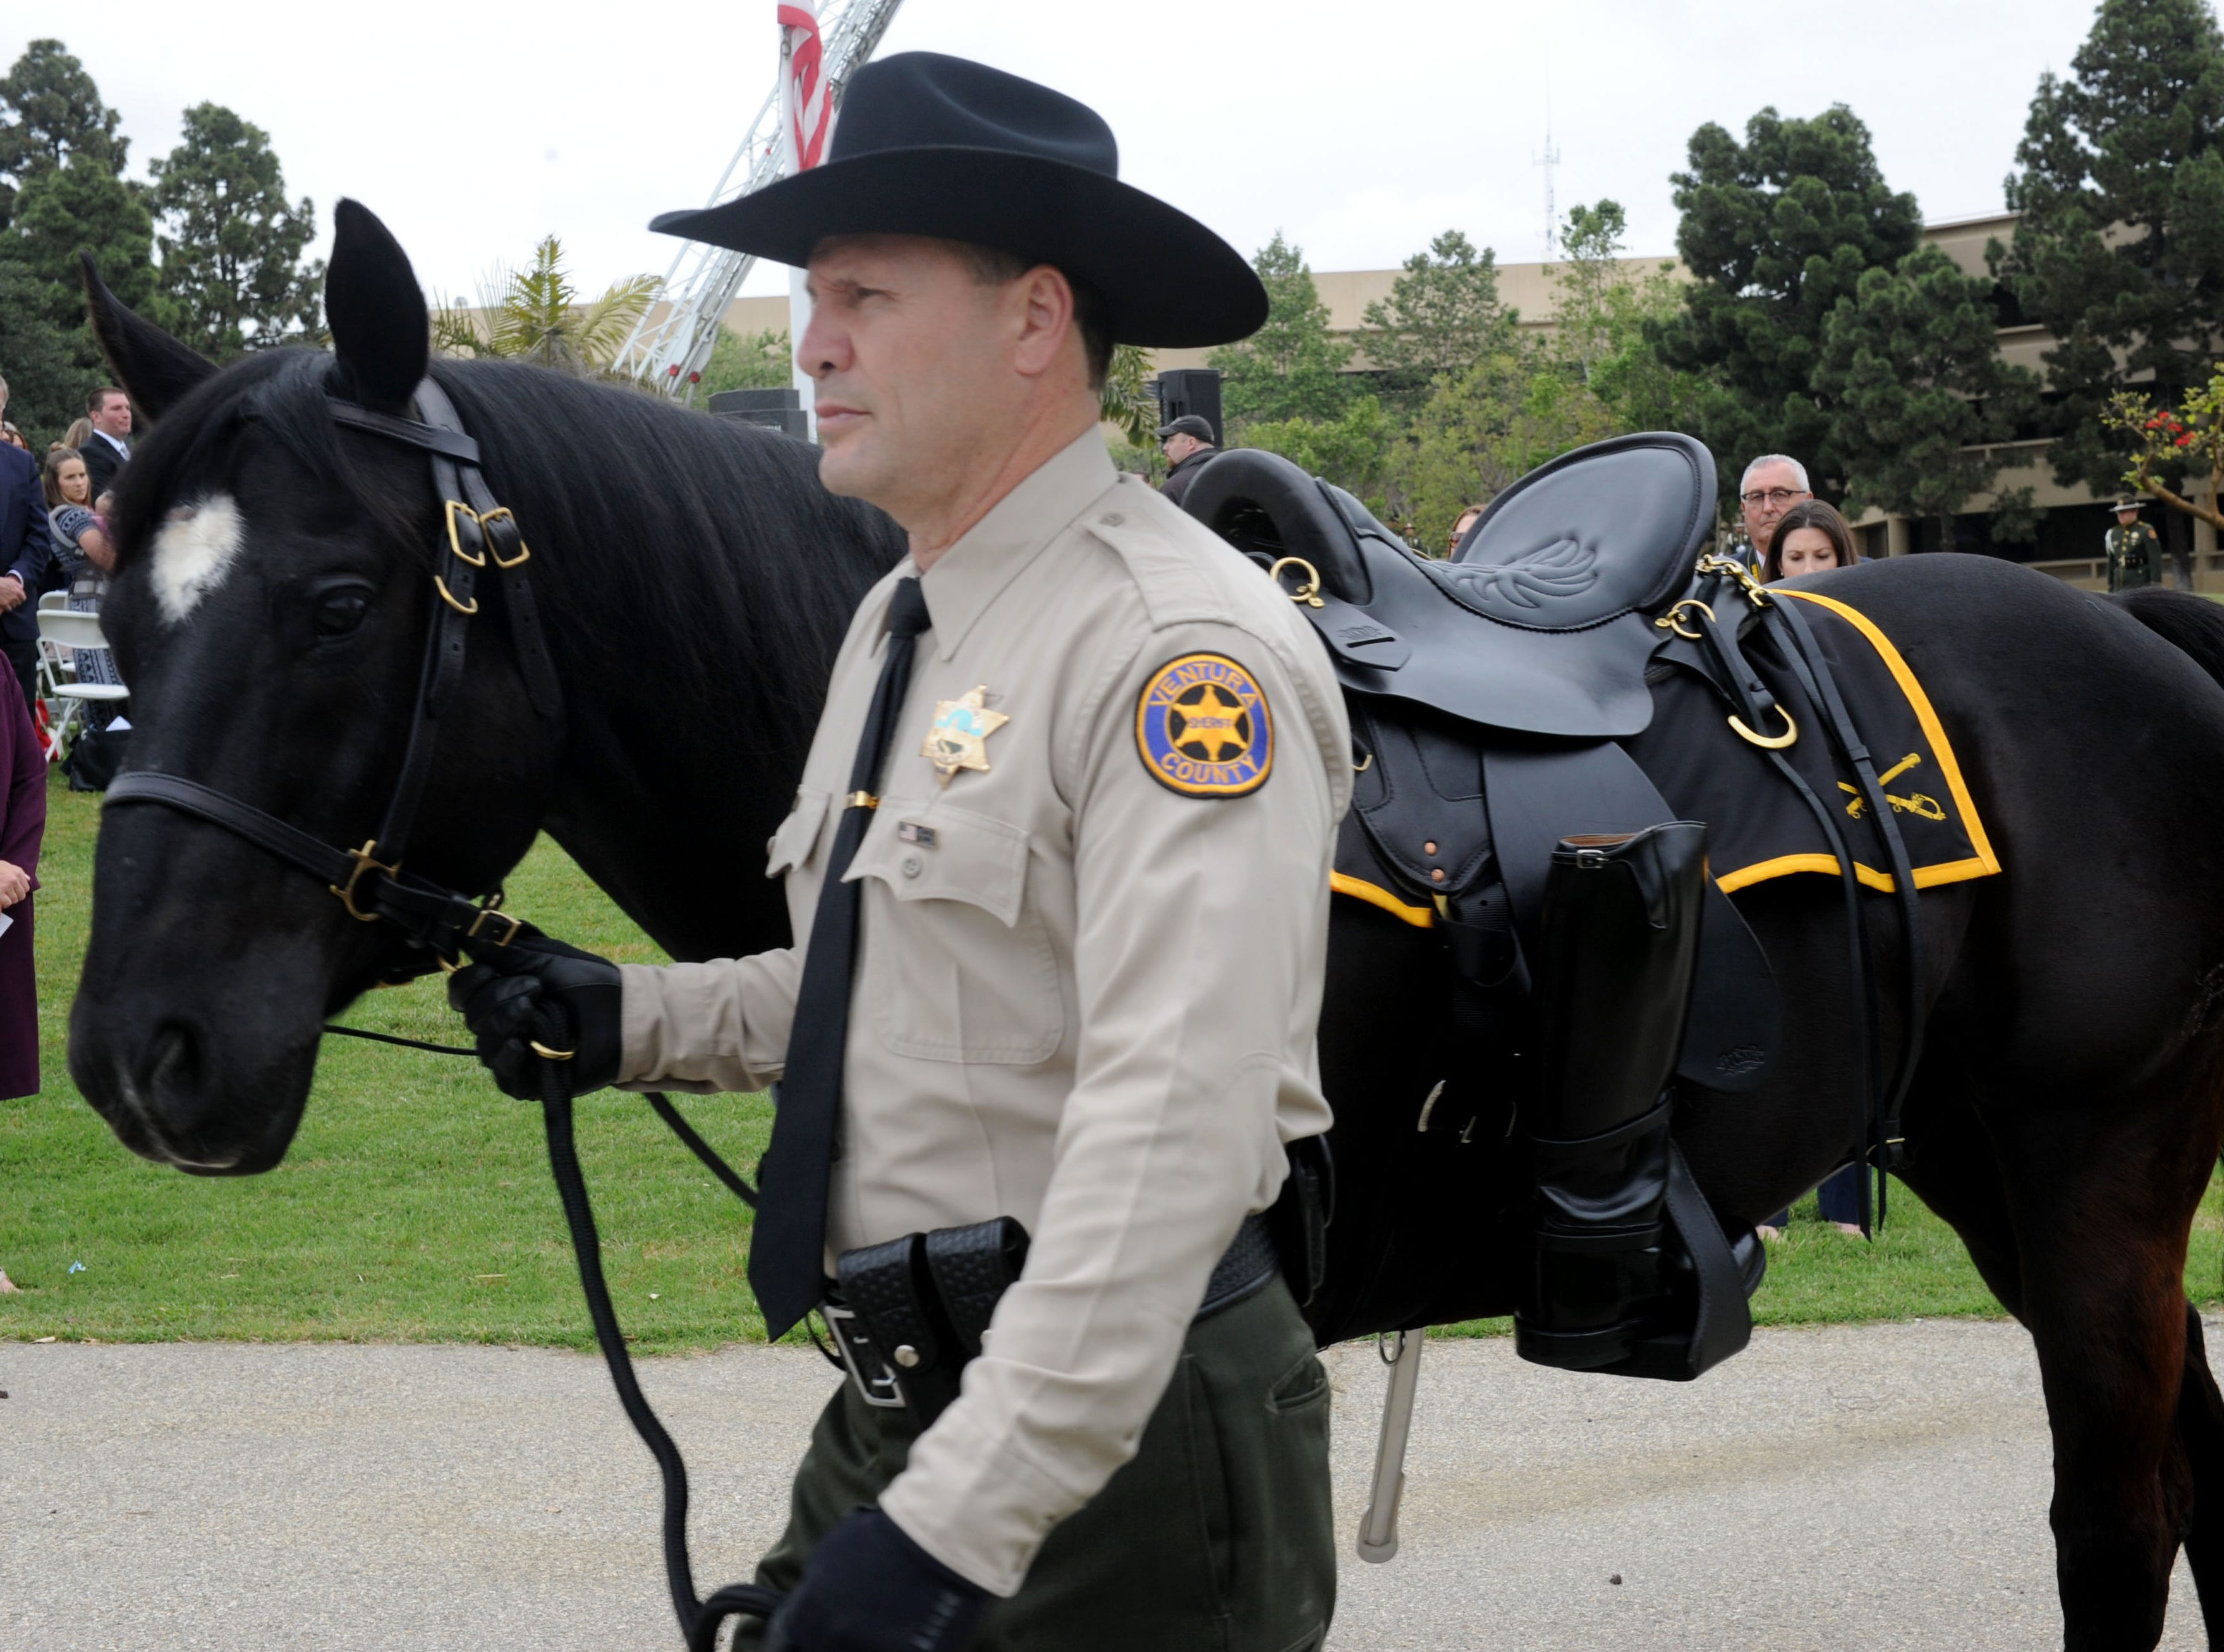 Deputy James Evans walks Tahoe as the riderless horse at the Ventura County Peace Officers Memorial on Thursday. A ceremony at the Ventura County Government Center honored the late Sgt. Ron Helus and other fallen law enforcement officers.